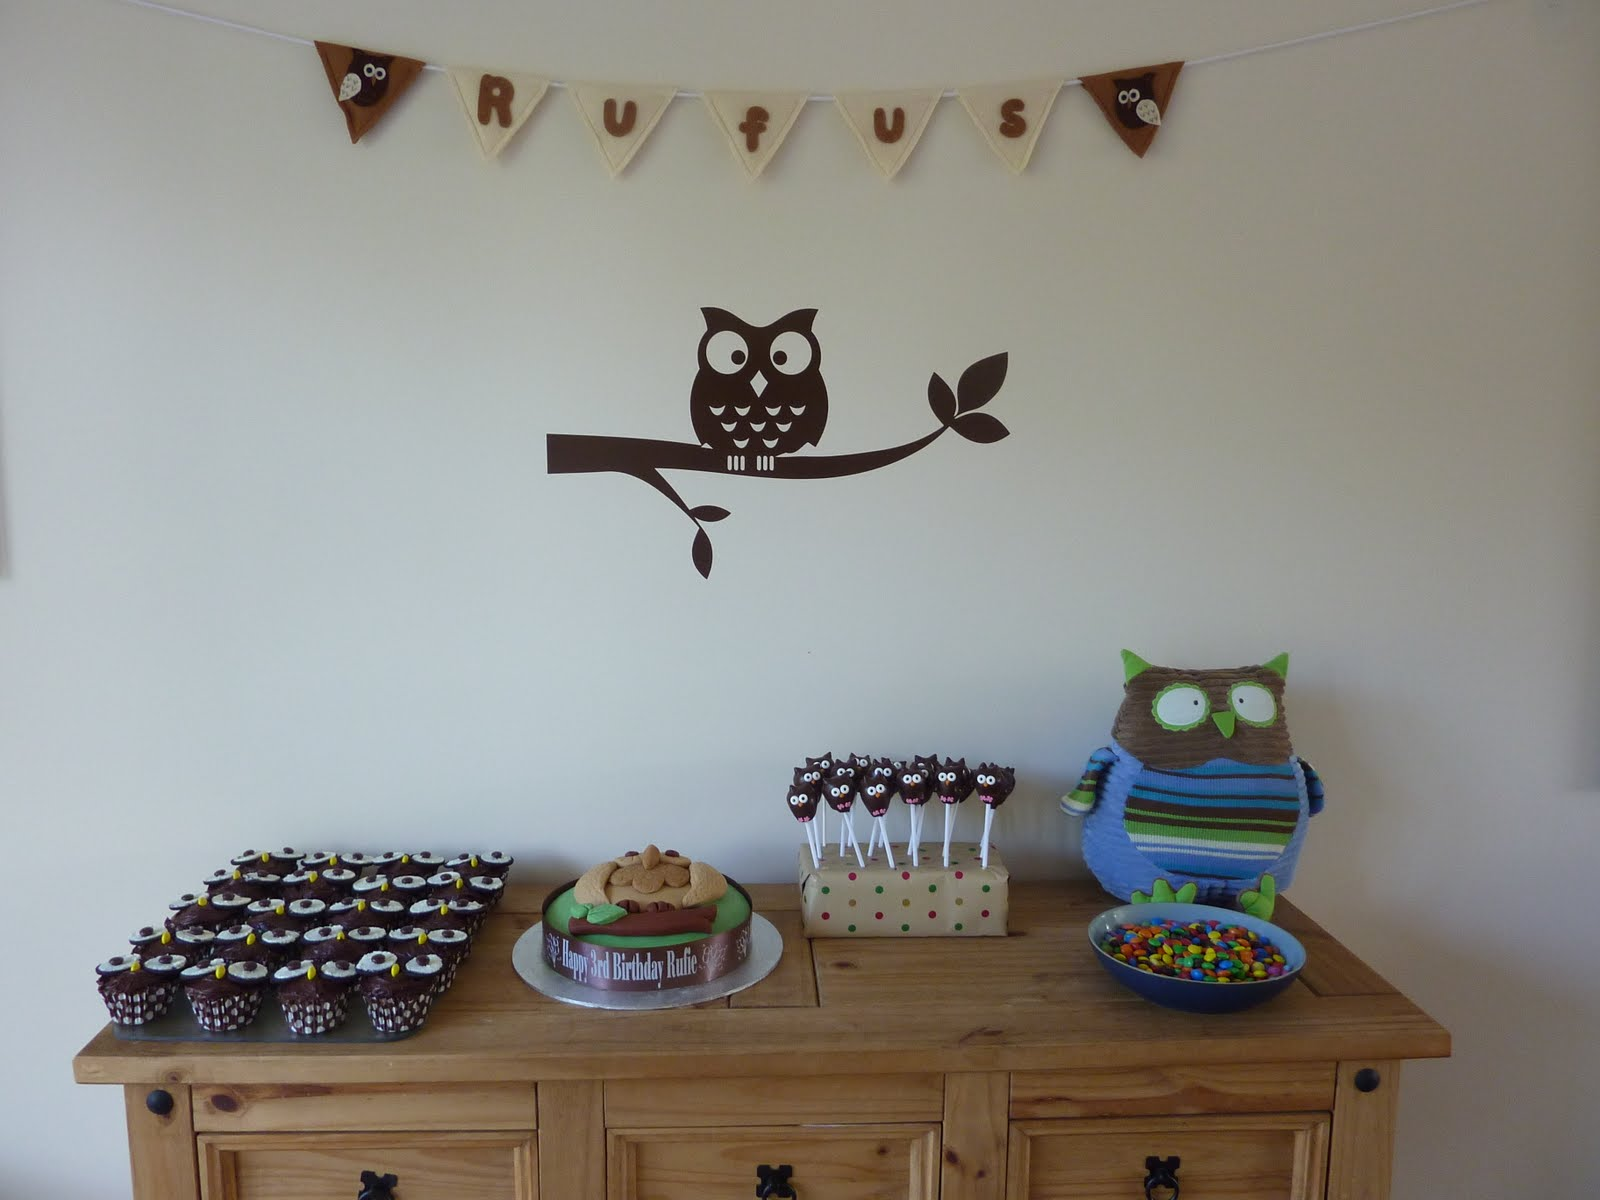 Please Do Not Feed The Animals!: Owl Party!